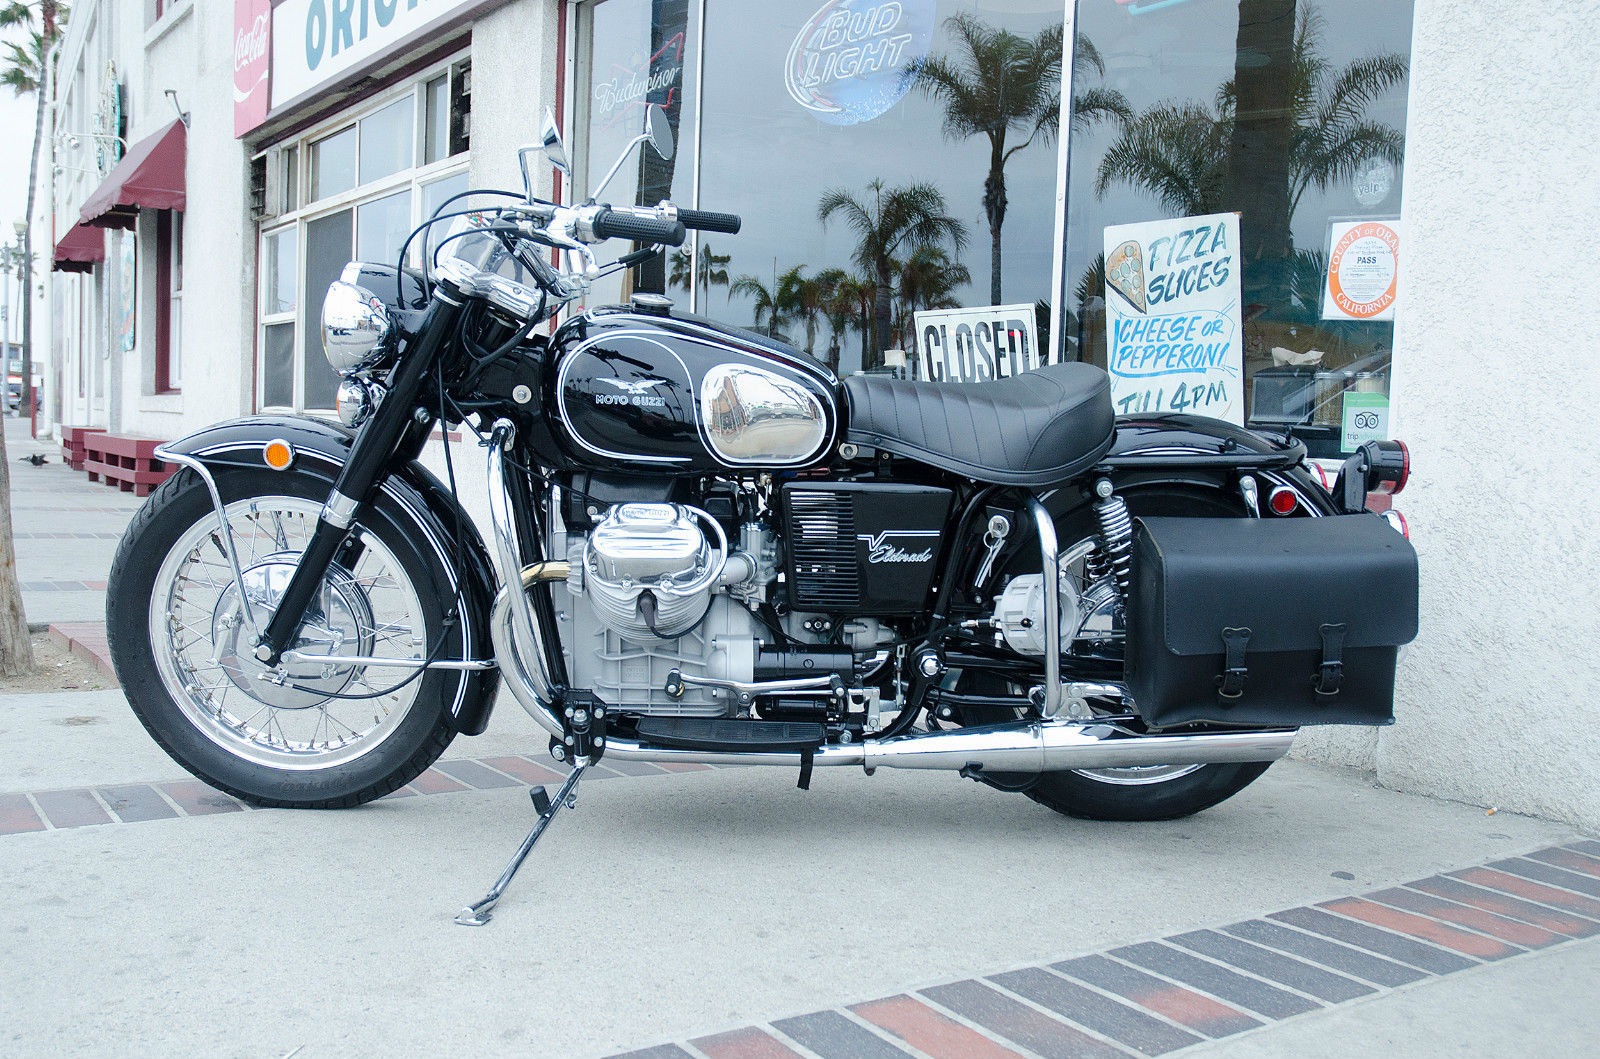 The Moto Guzzi Eldorado was developed from a sixties police motorcycle created by Moto Guzzi for the Italian police.